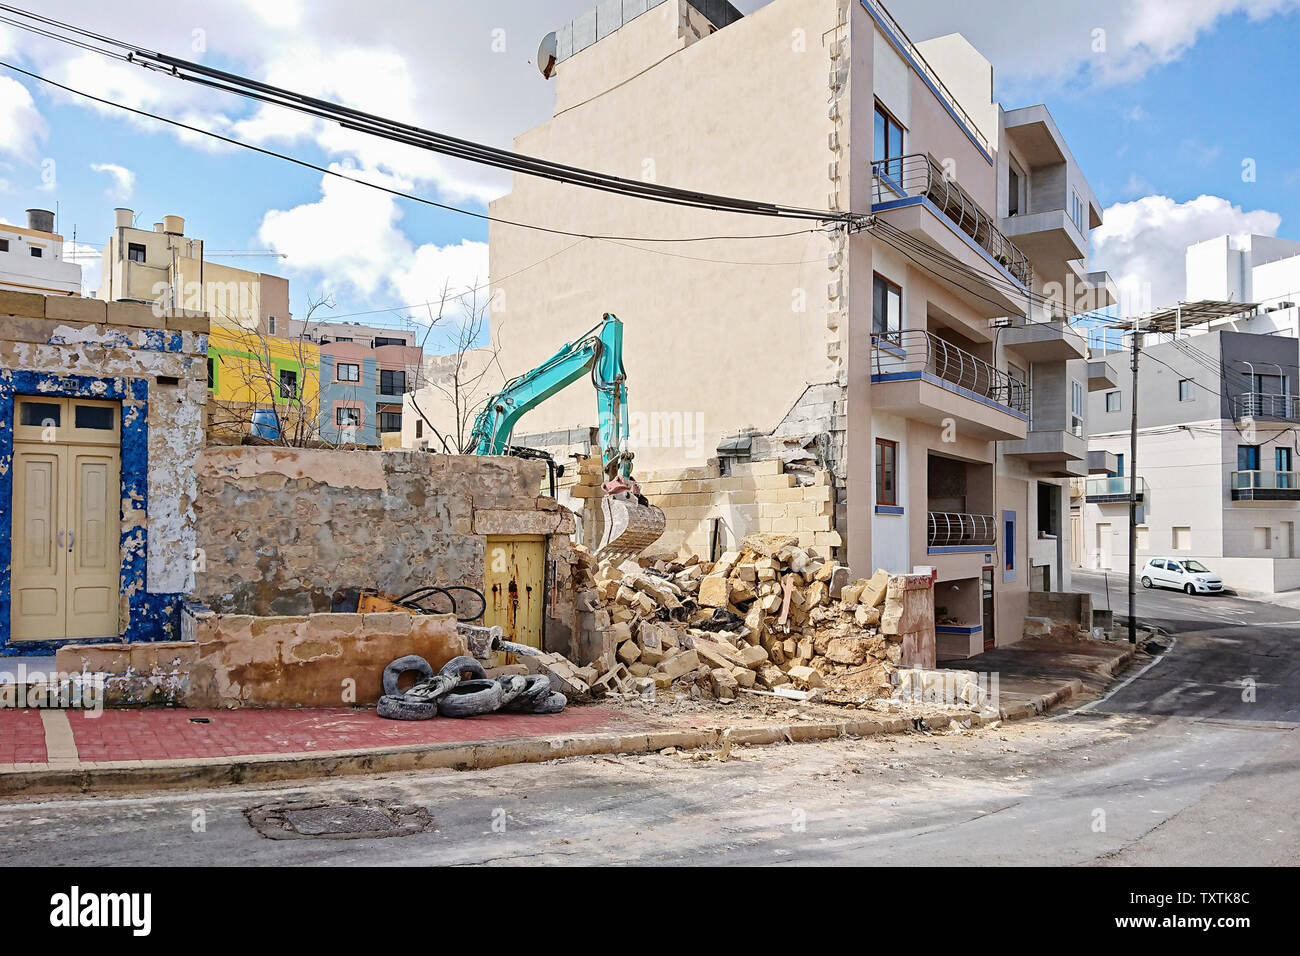 Excavator working at the demolition of an old residential building among other houses. Excavation and demolition works Stock Photo